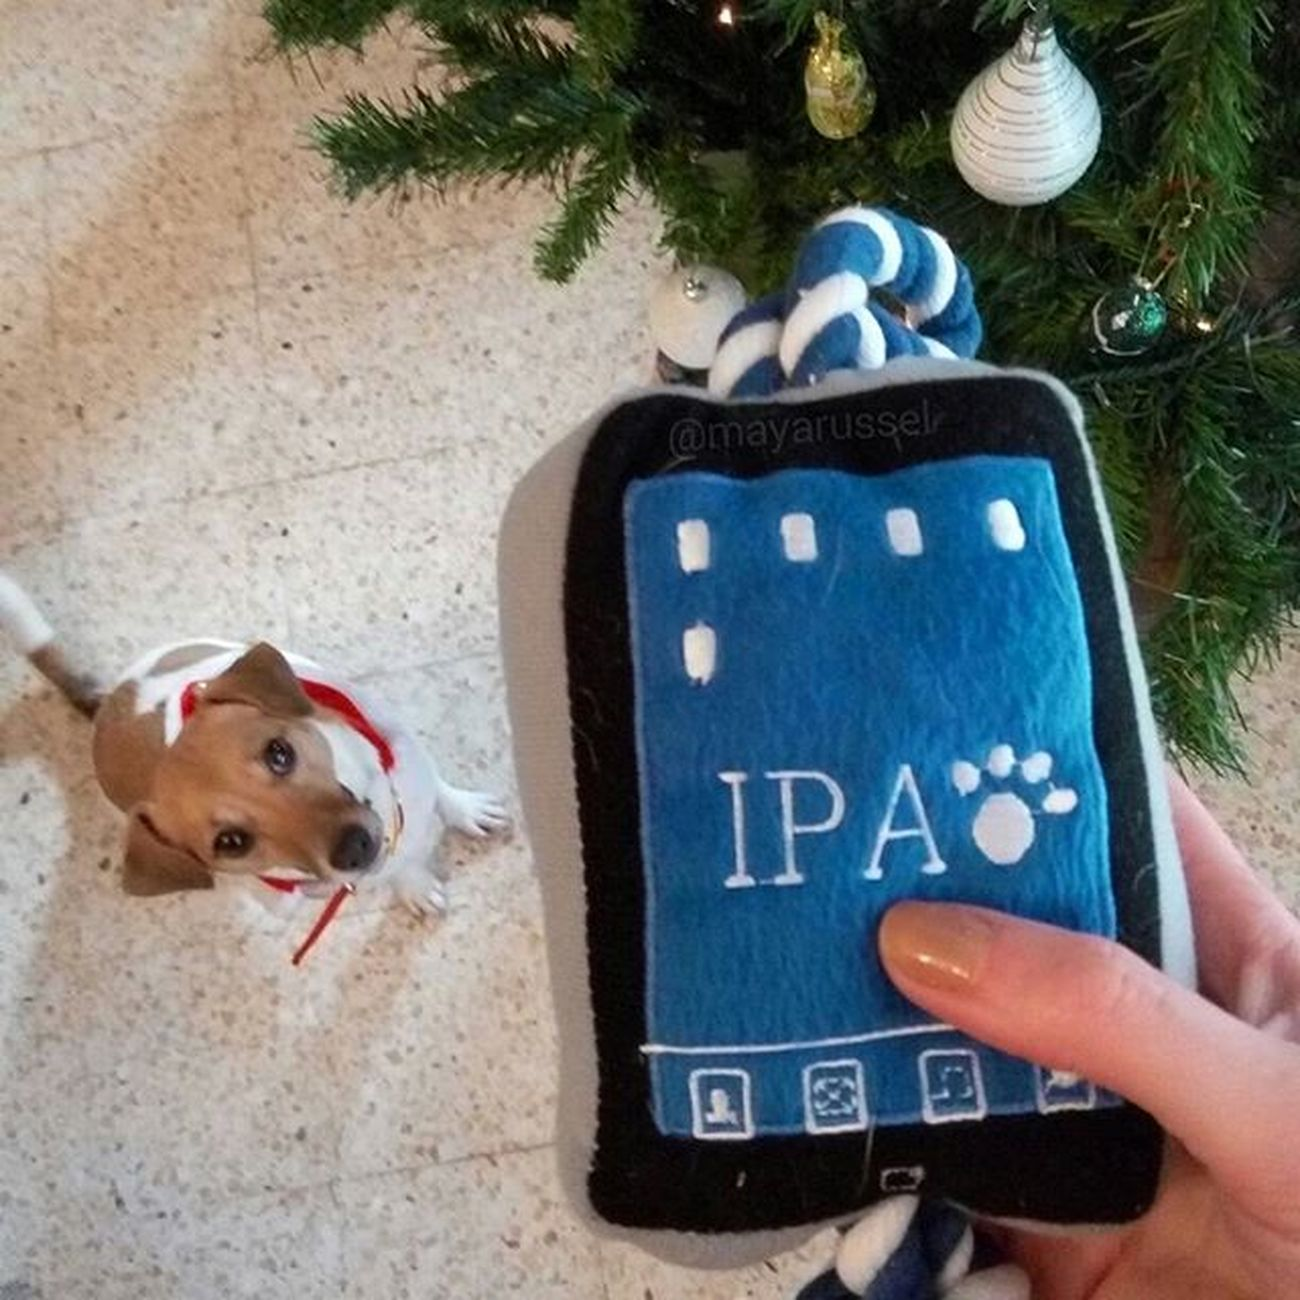 J'ai eu un iPad pour Noël ! Youhou ! Apple Ipad Jackrussellinstagram Instadog Dogstagram Ilovemydog Ilovemyjackrussell Animalsofinstagram Animallover Dogselfie Ilovemyjackrussell Lovedogs Jackrussell Jackrussellterrier Cutedogs DogAndChild Instadogs Jackstagram Mydogiscutest Dogs_of_instagram Ilovemyjrt Parsonrussell Instapet Instaanimal Jackrussellsofig dogoftheday doglovers pictureoftheday Christmas